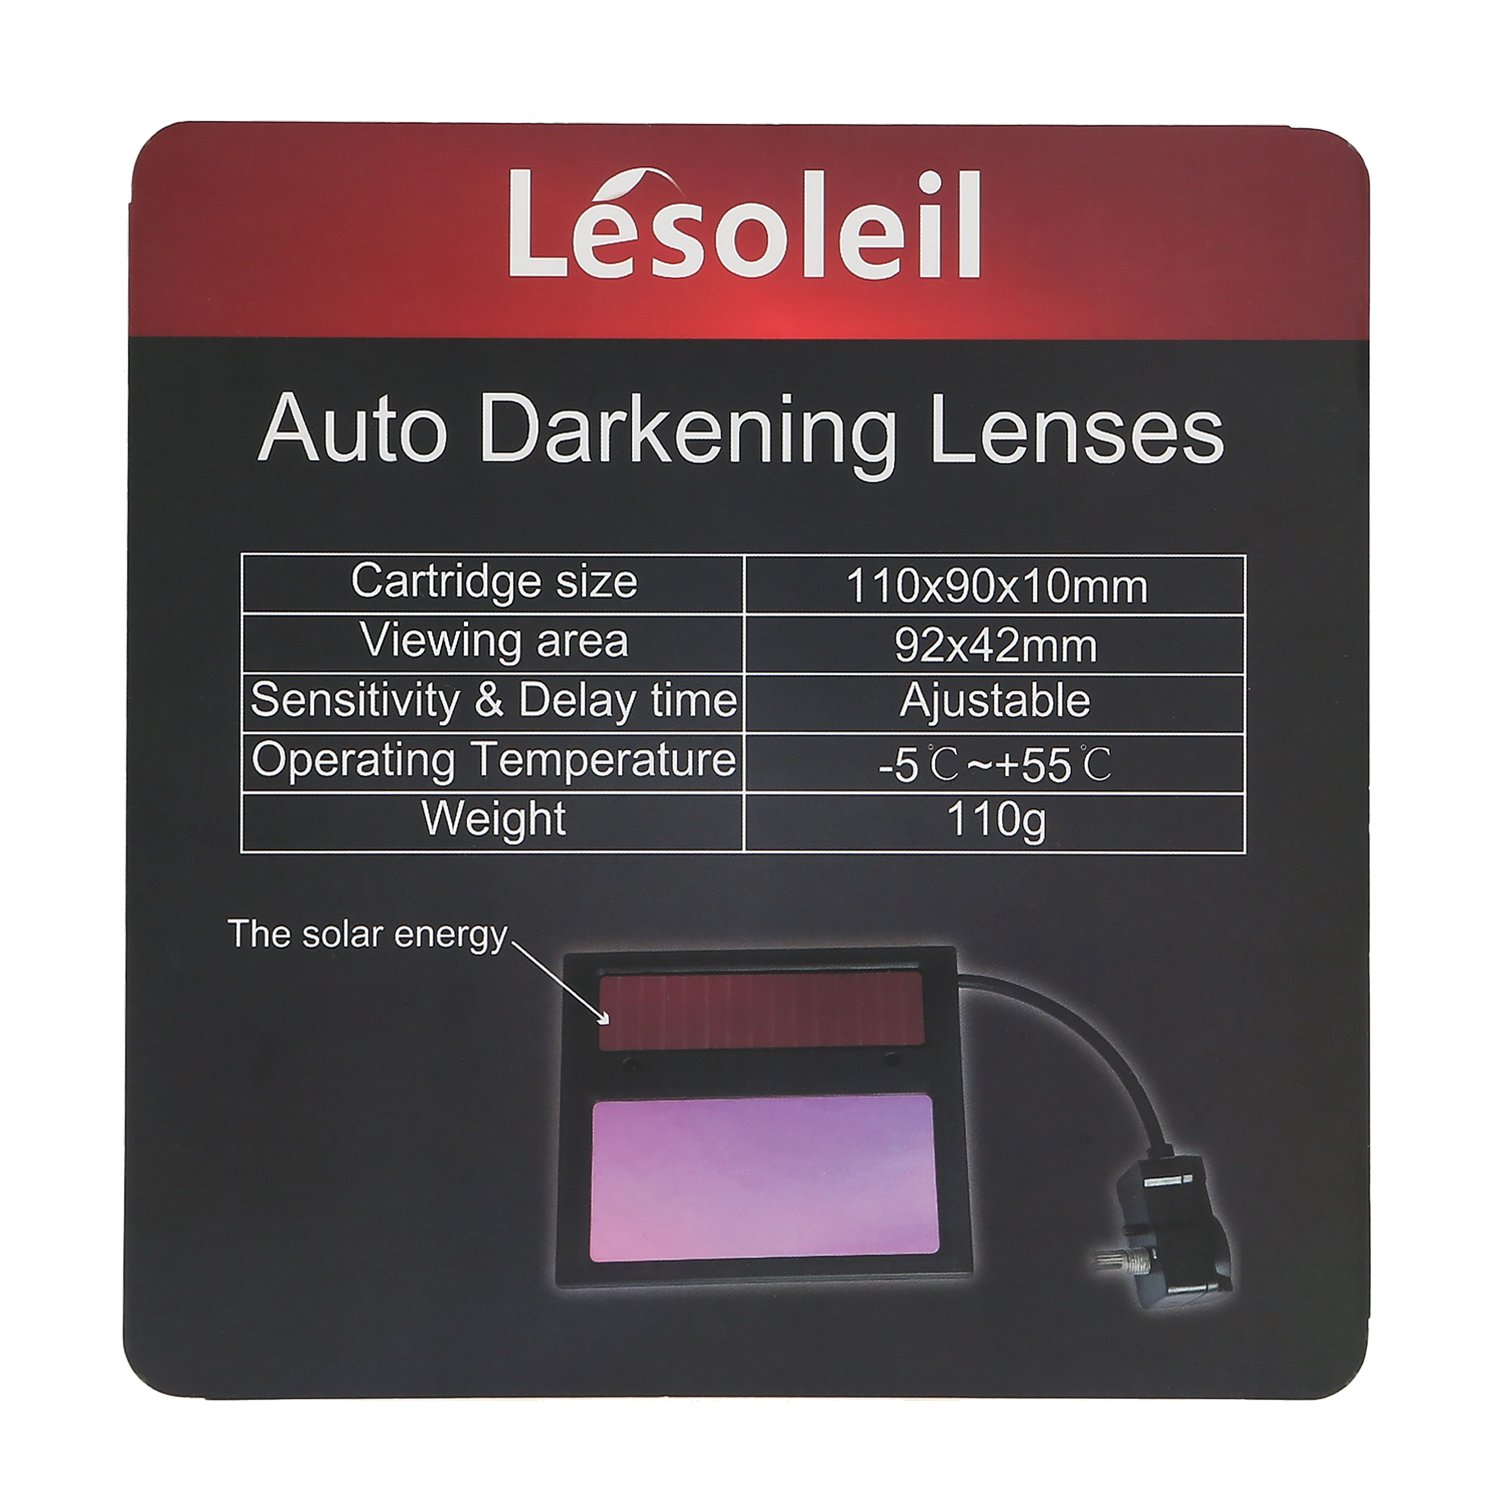 LESOLEIL Welding Helmet Replacement Lens, Auto-Darkening LCD Display - - Amazon.com